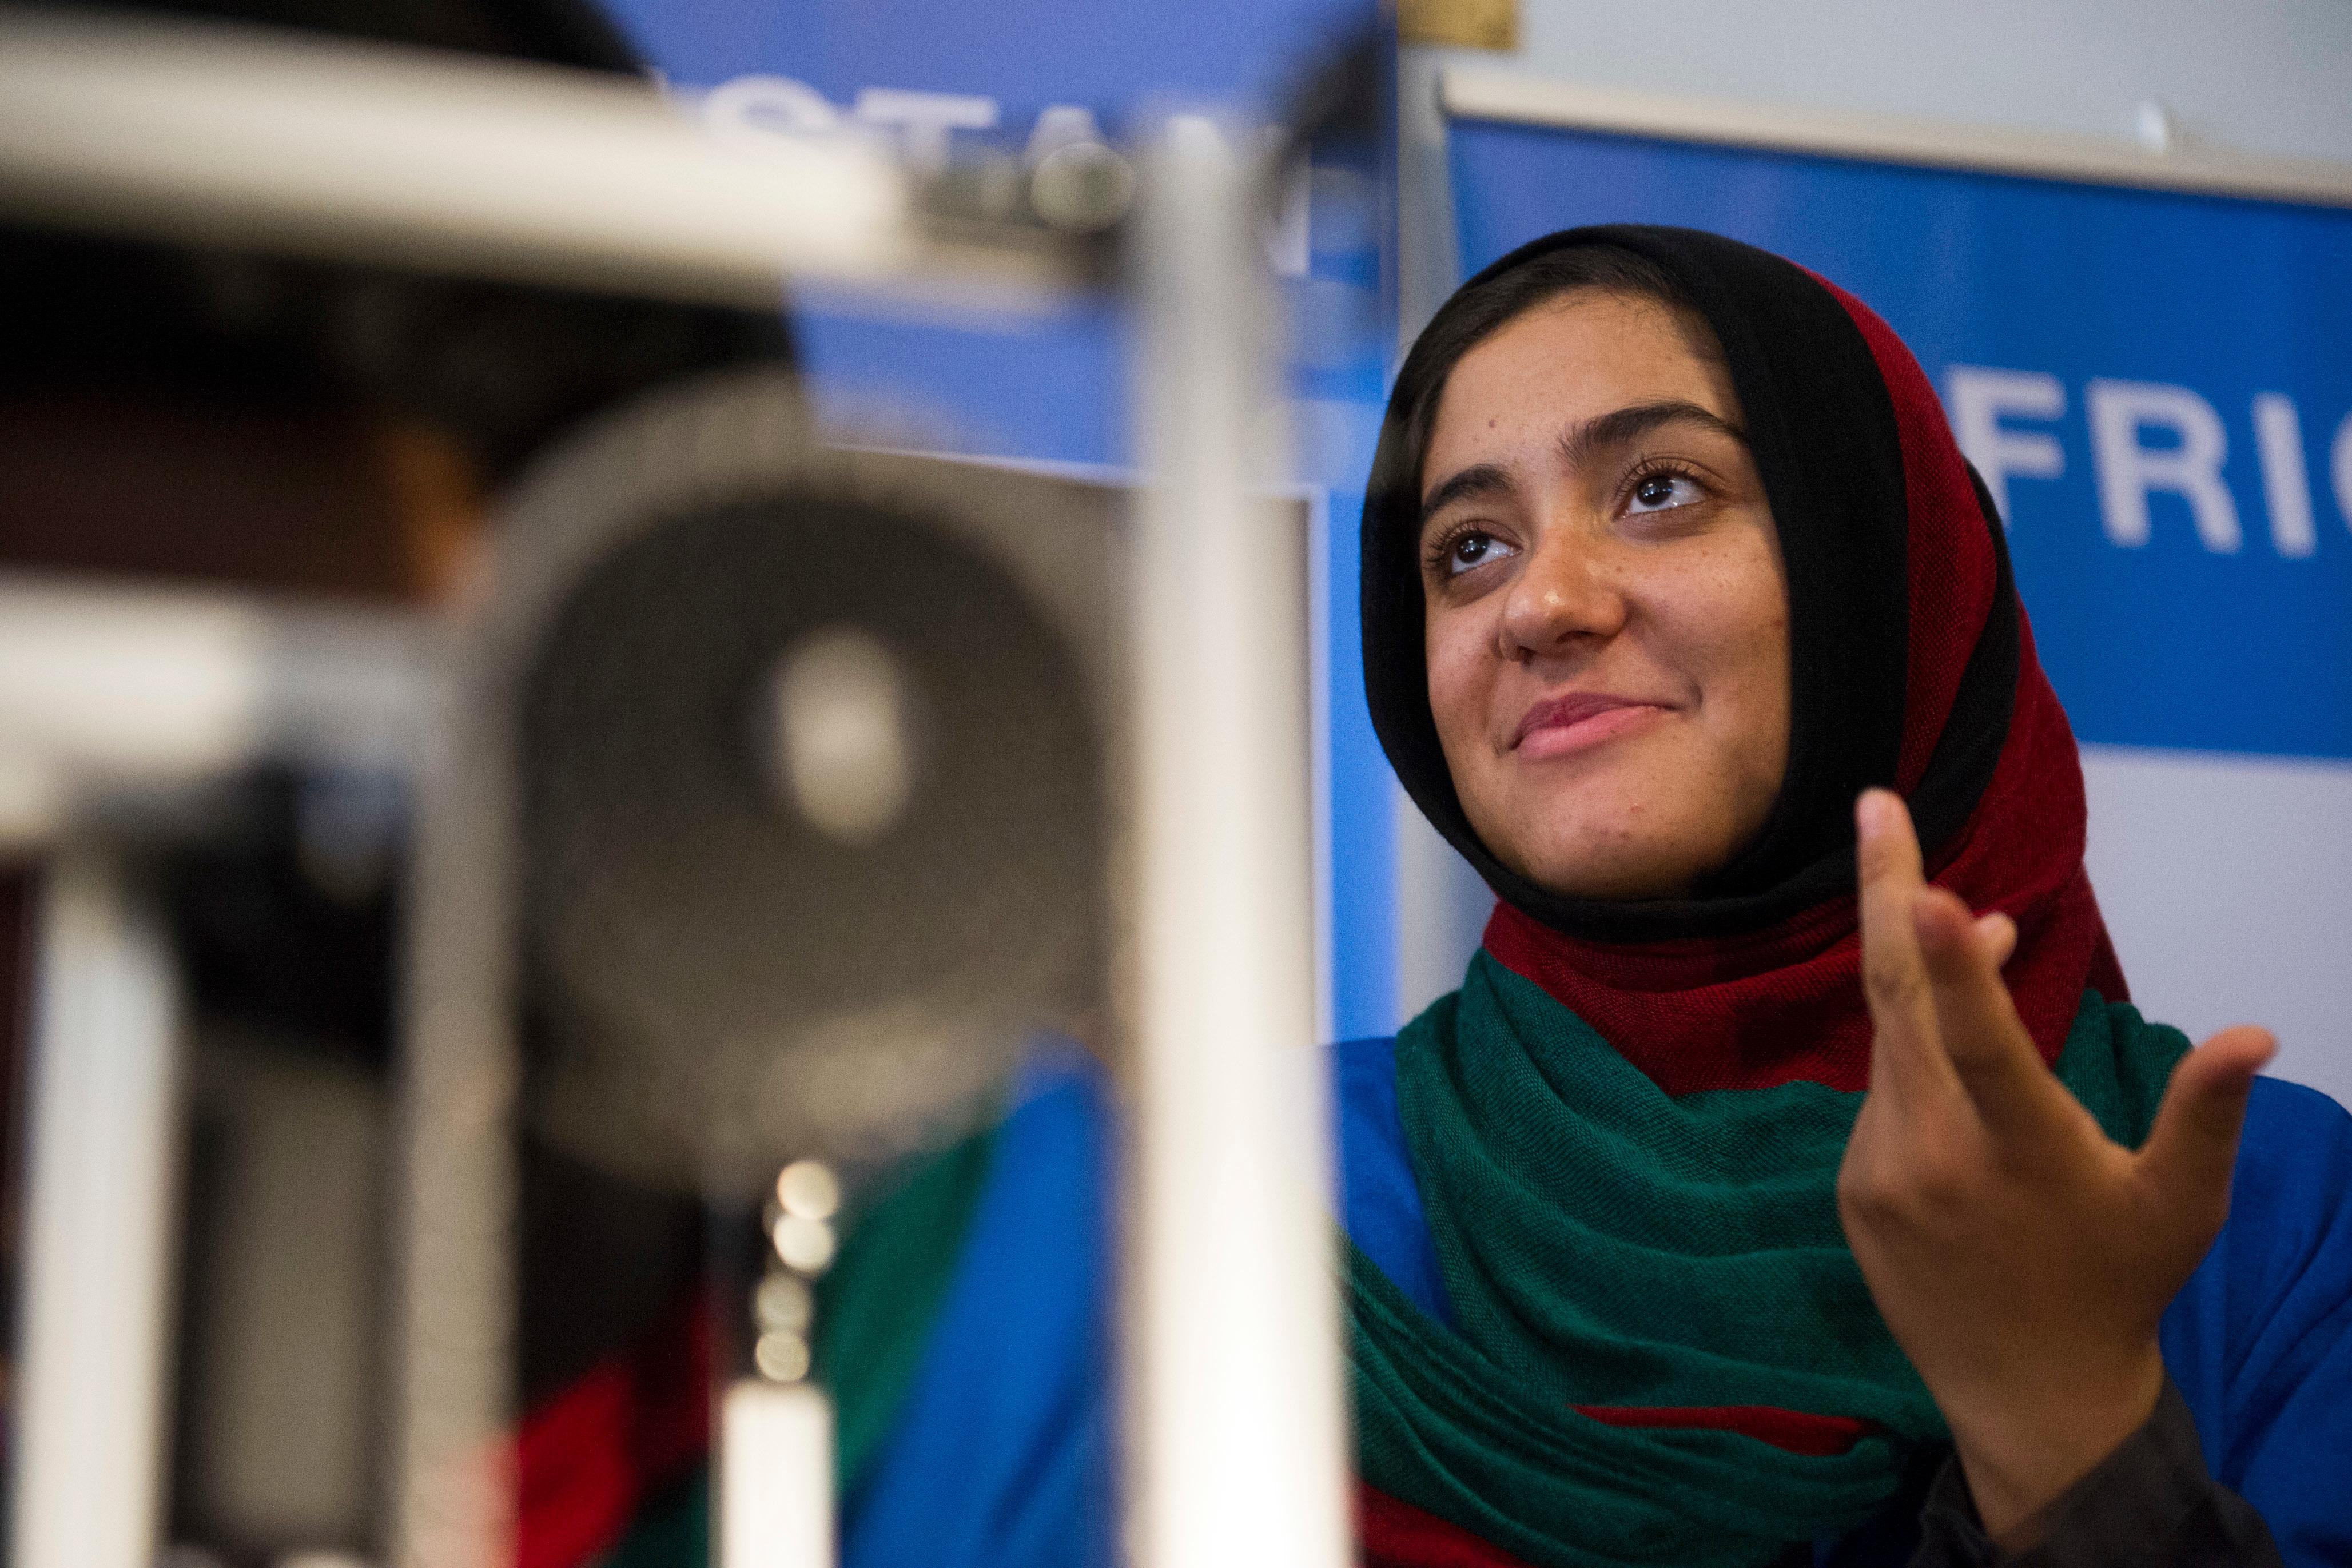 Afghanistan team member Lisa Azizi trouble shoots the teams robot entry prior to the opening ceremony for the FIRST Global Challenge 2017, in Washington, Sunday, July 16, 2017. They will be competing against entrants from more than 150 countries in the FIRST Global Challenge. It's the first annual robotics competition designed to encourage youths to pursue careers in math and science.  (AP Photo/Cliff Owen)